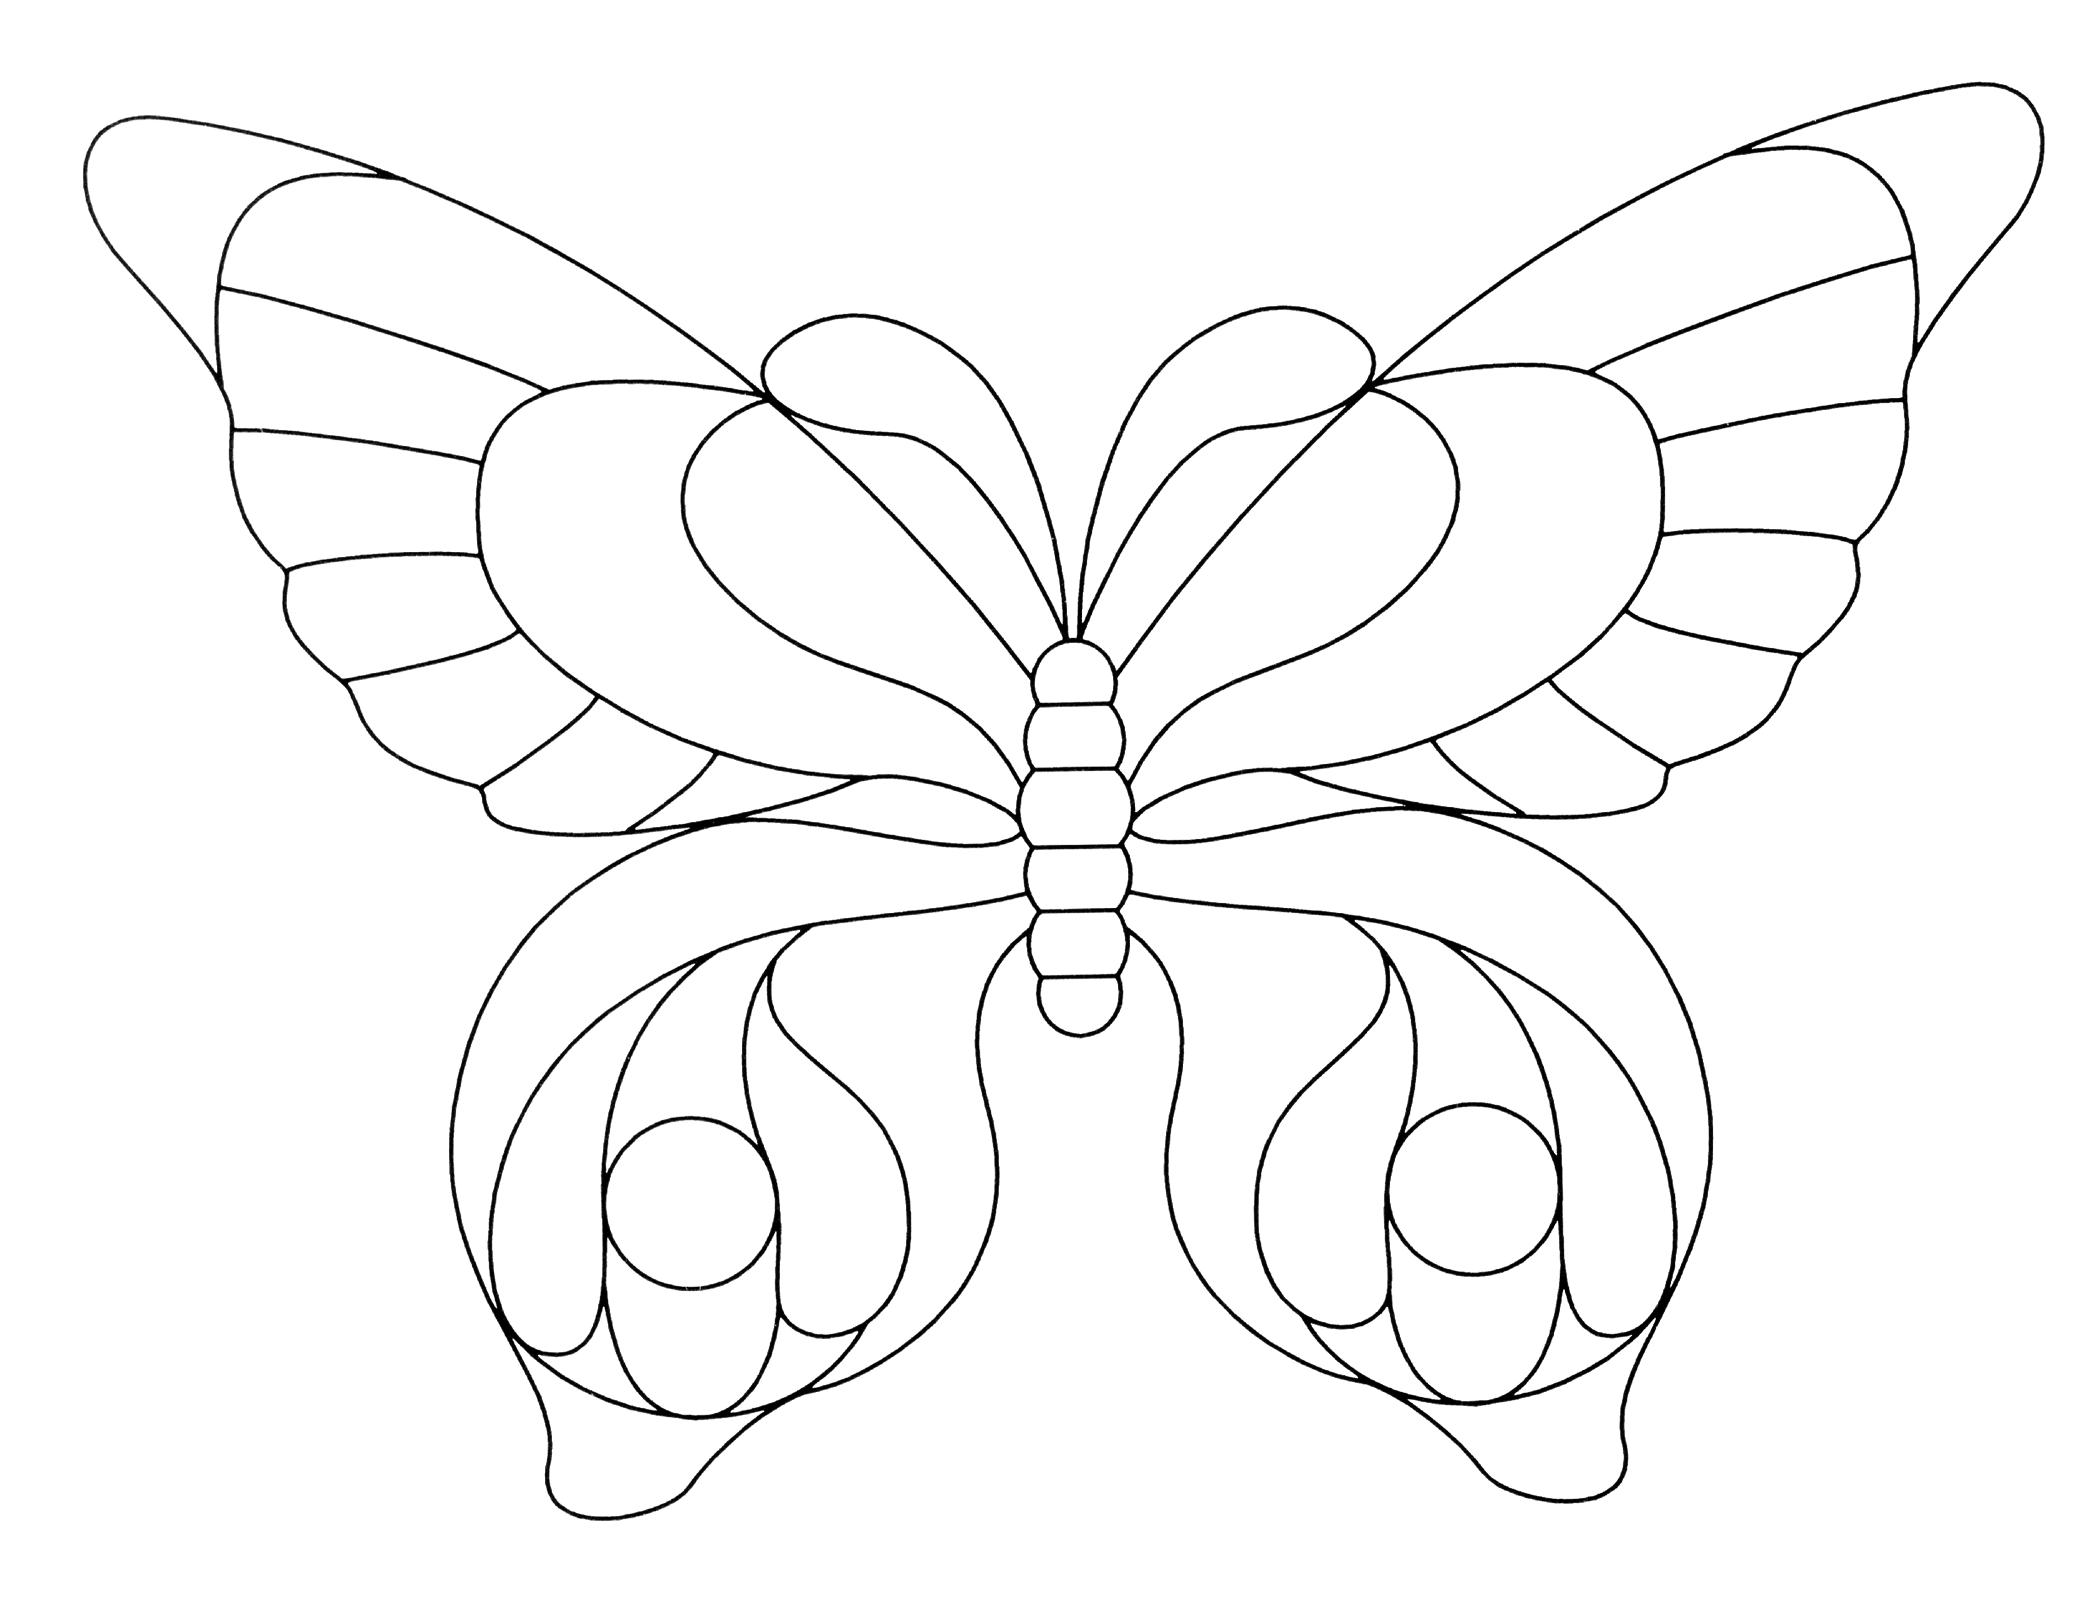 Butterfly Template 1.png (Png Image, 2100 × 1599 Pixels) - Scaled